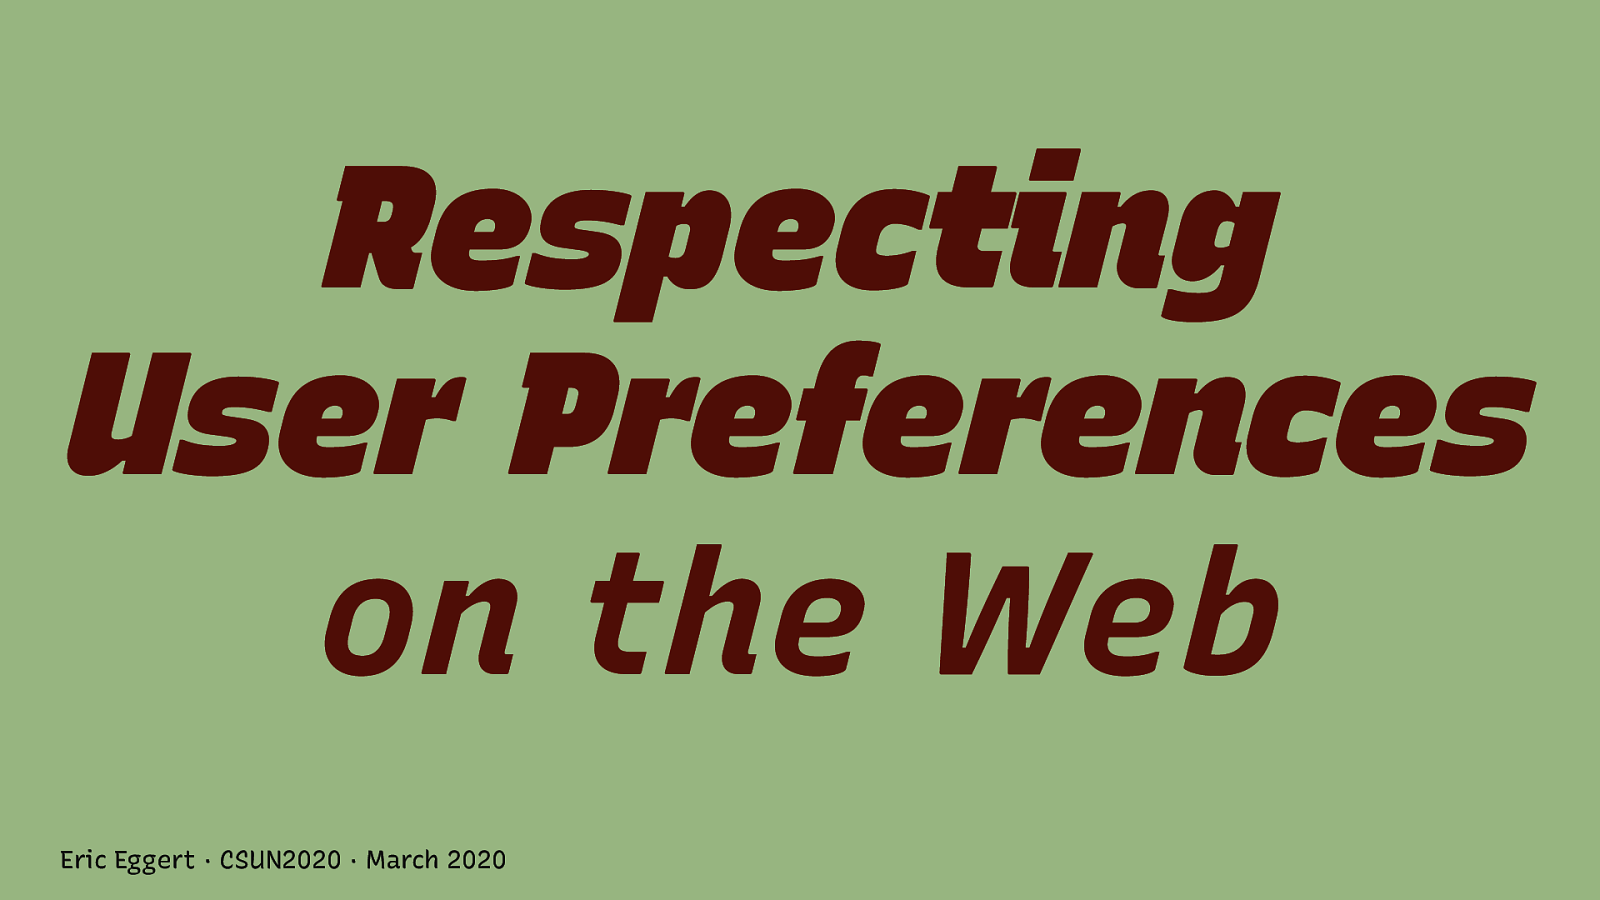 Respecting User Preferences on the Web